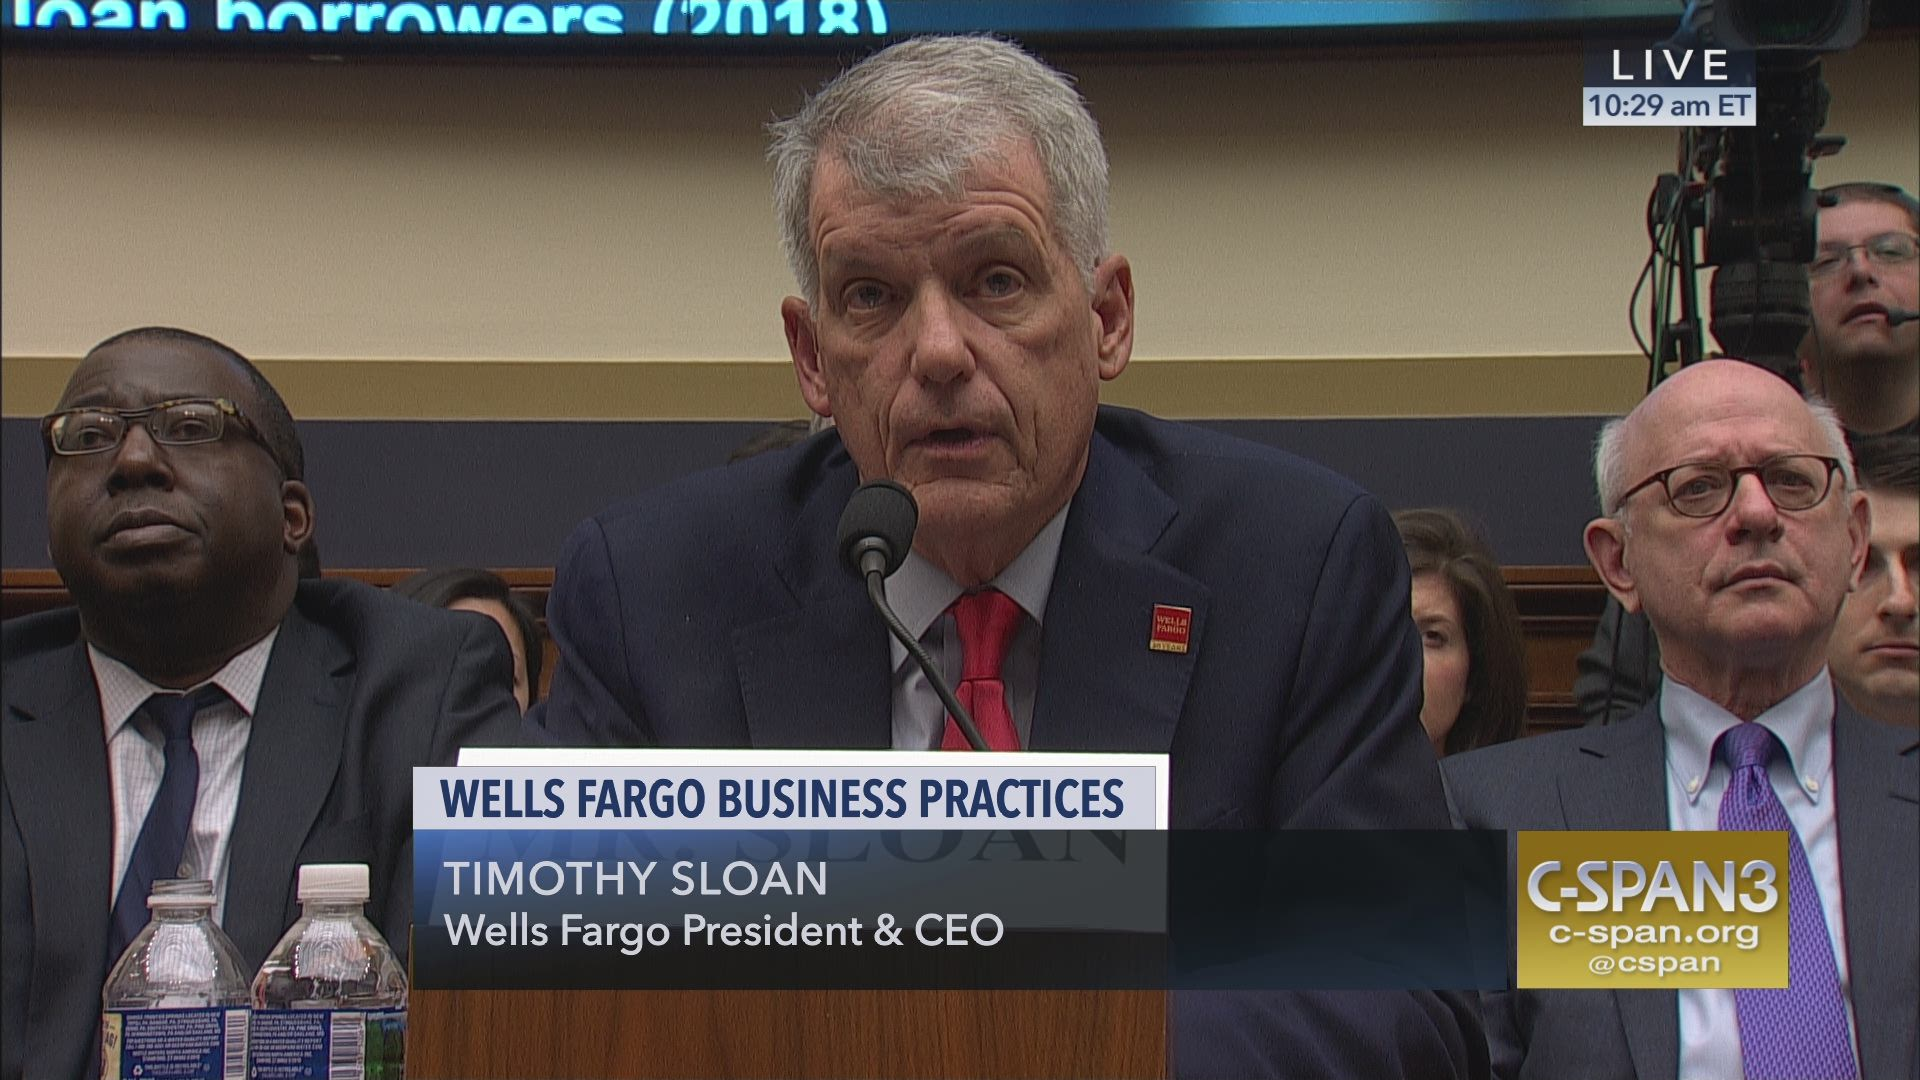 Wells Fargo Business Practices